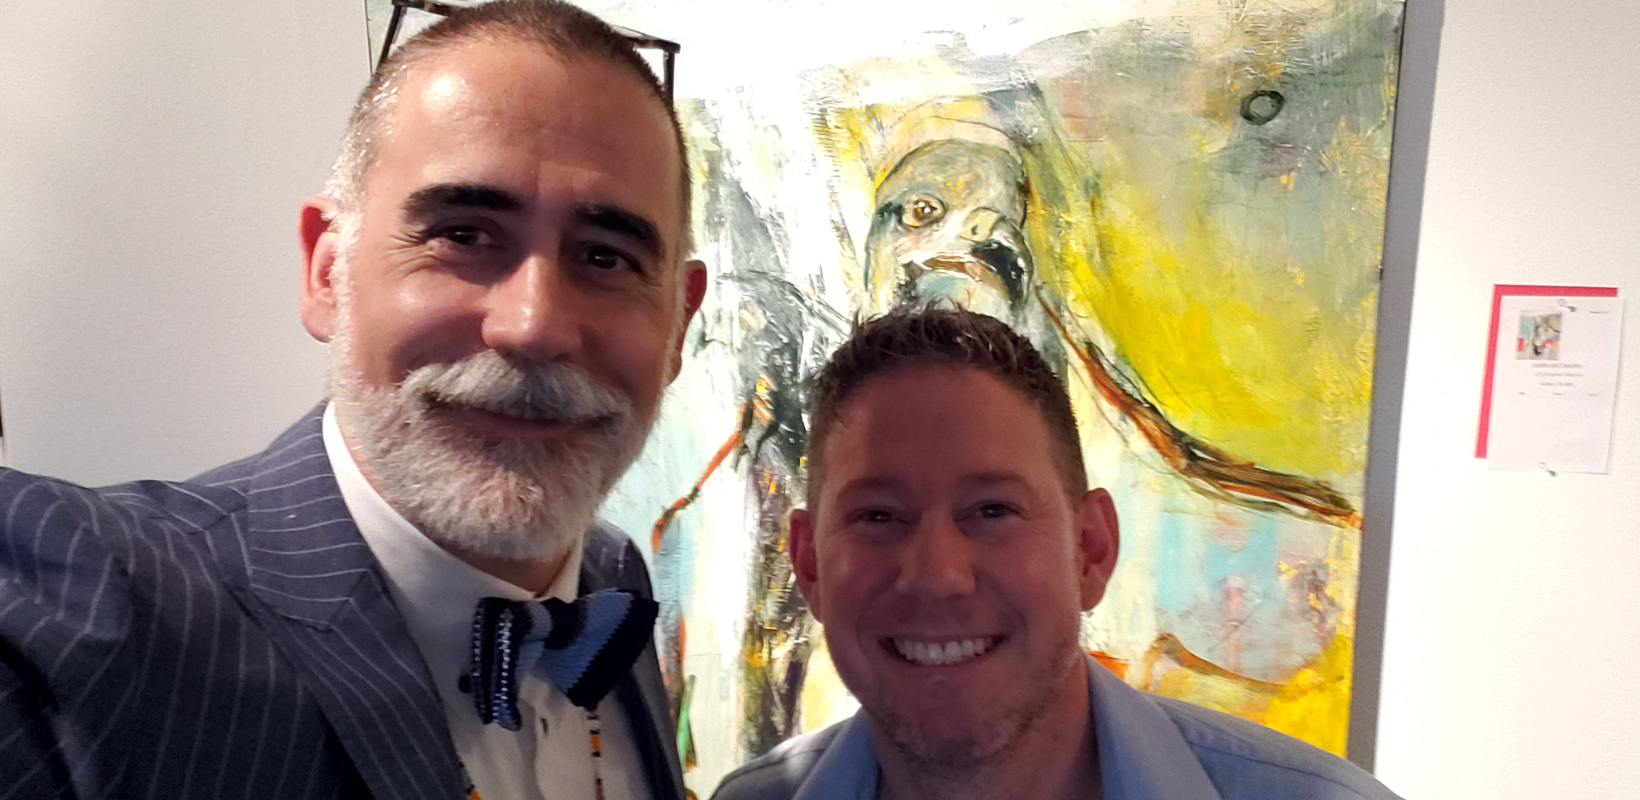 "Museum of Northwest Art, 06-08-2019 - Standing in front of my painting, ""Guides & Teachers."" Christopher Mathie with Stefano Catalani, Executive Director at Gage Academy of Art. He was this year's juror for the museum auction. Thanks for including my piece!"